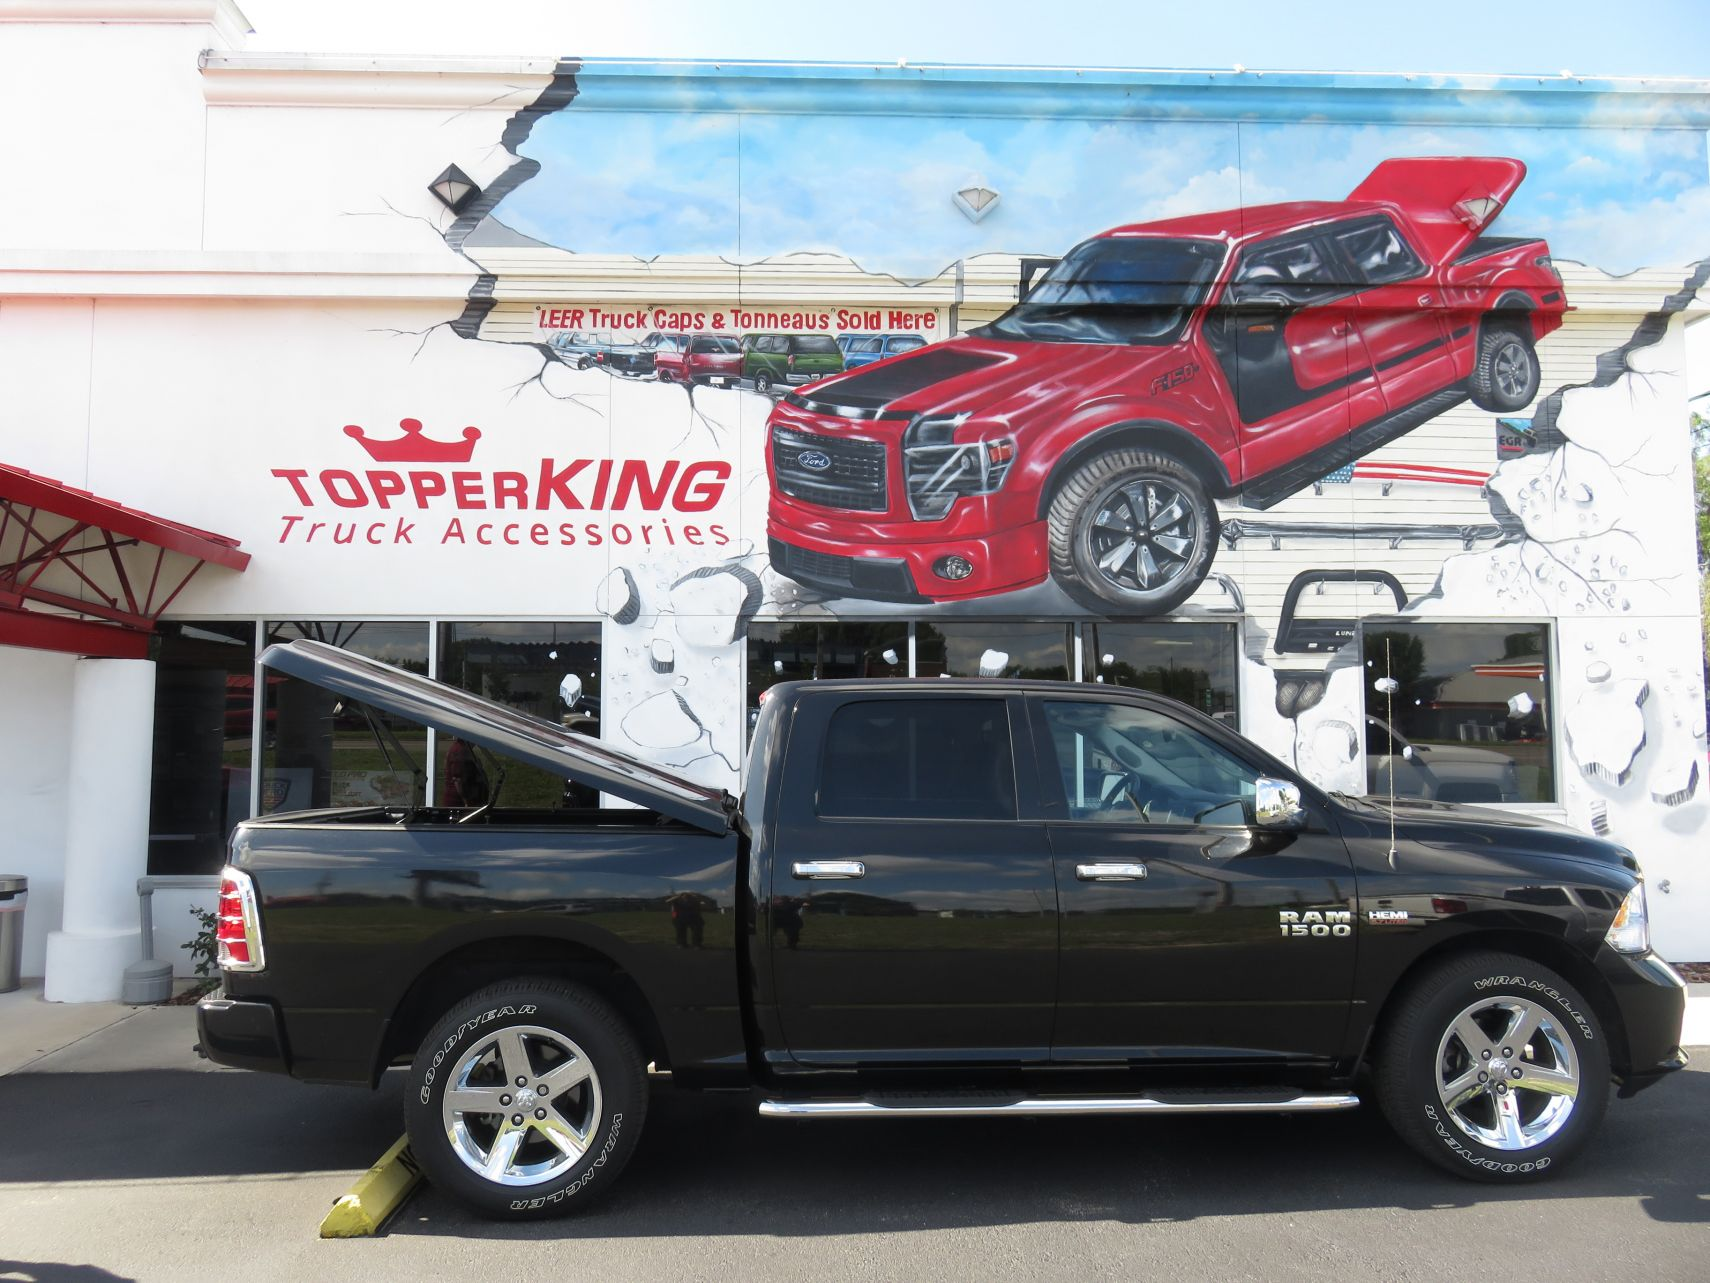 2018 Dodge RAM 1500 LEER 700, Nerf Bars, Chrome, and a Custom Hitch by TopperKING in Brandon, FL 813-689-2449 or Clearwater, FL 727-530-9066. Call today!